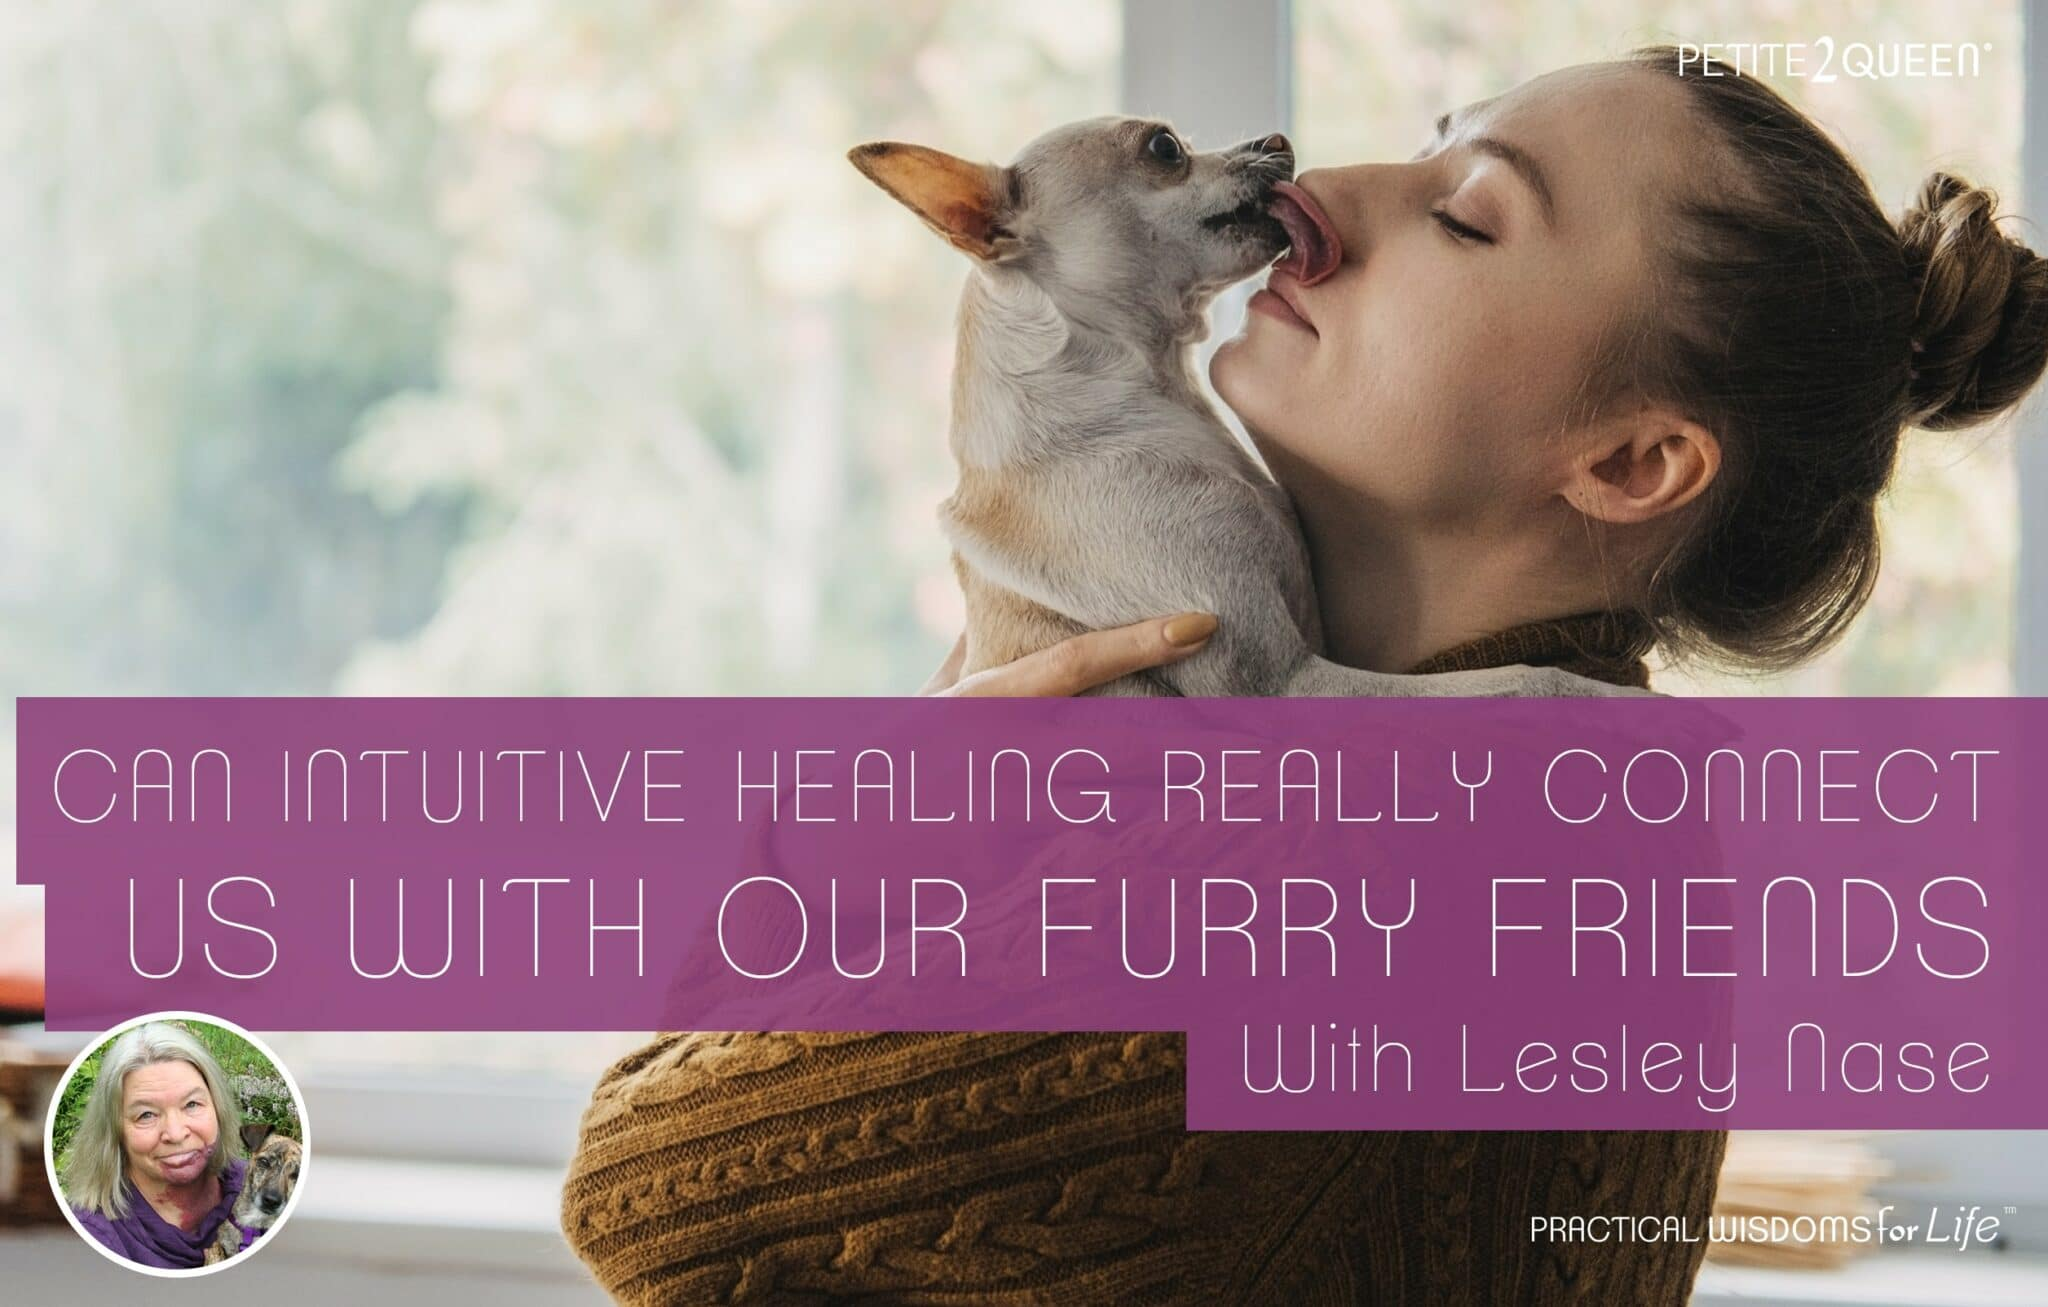 Can Intuitive Healing Really Connect Us With Our Fuzzy Friends? - Lesley Nase